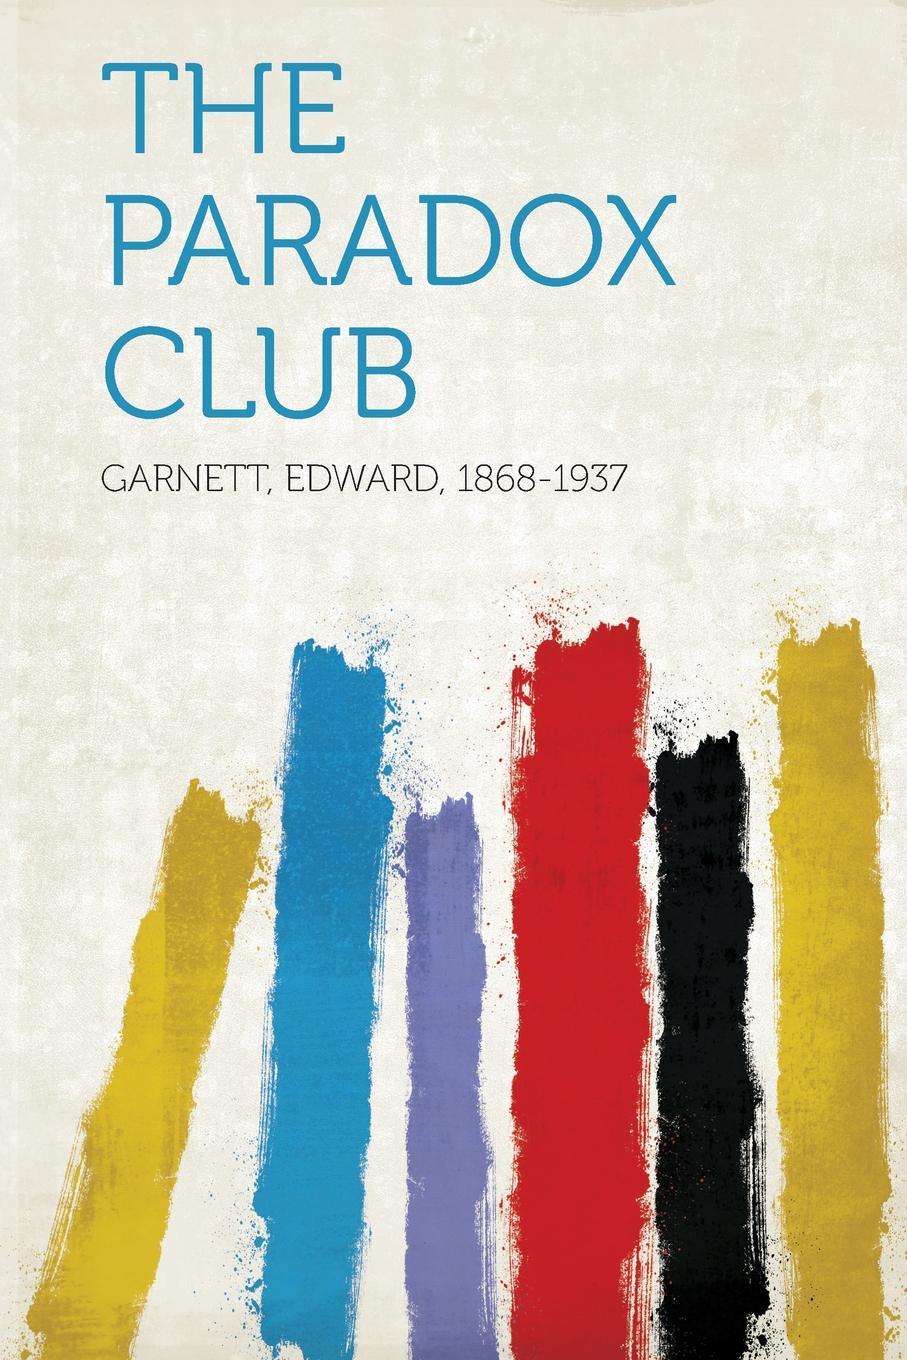 Garnett Edward 1868-1937 The Paradox Club